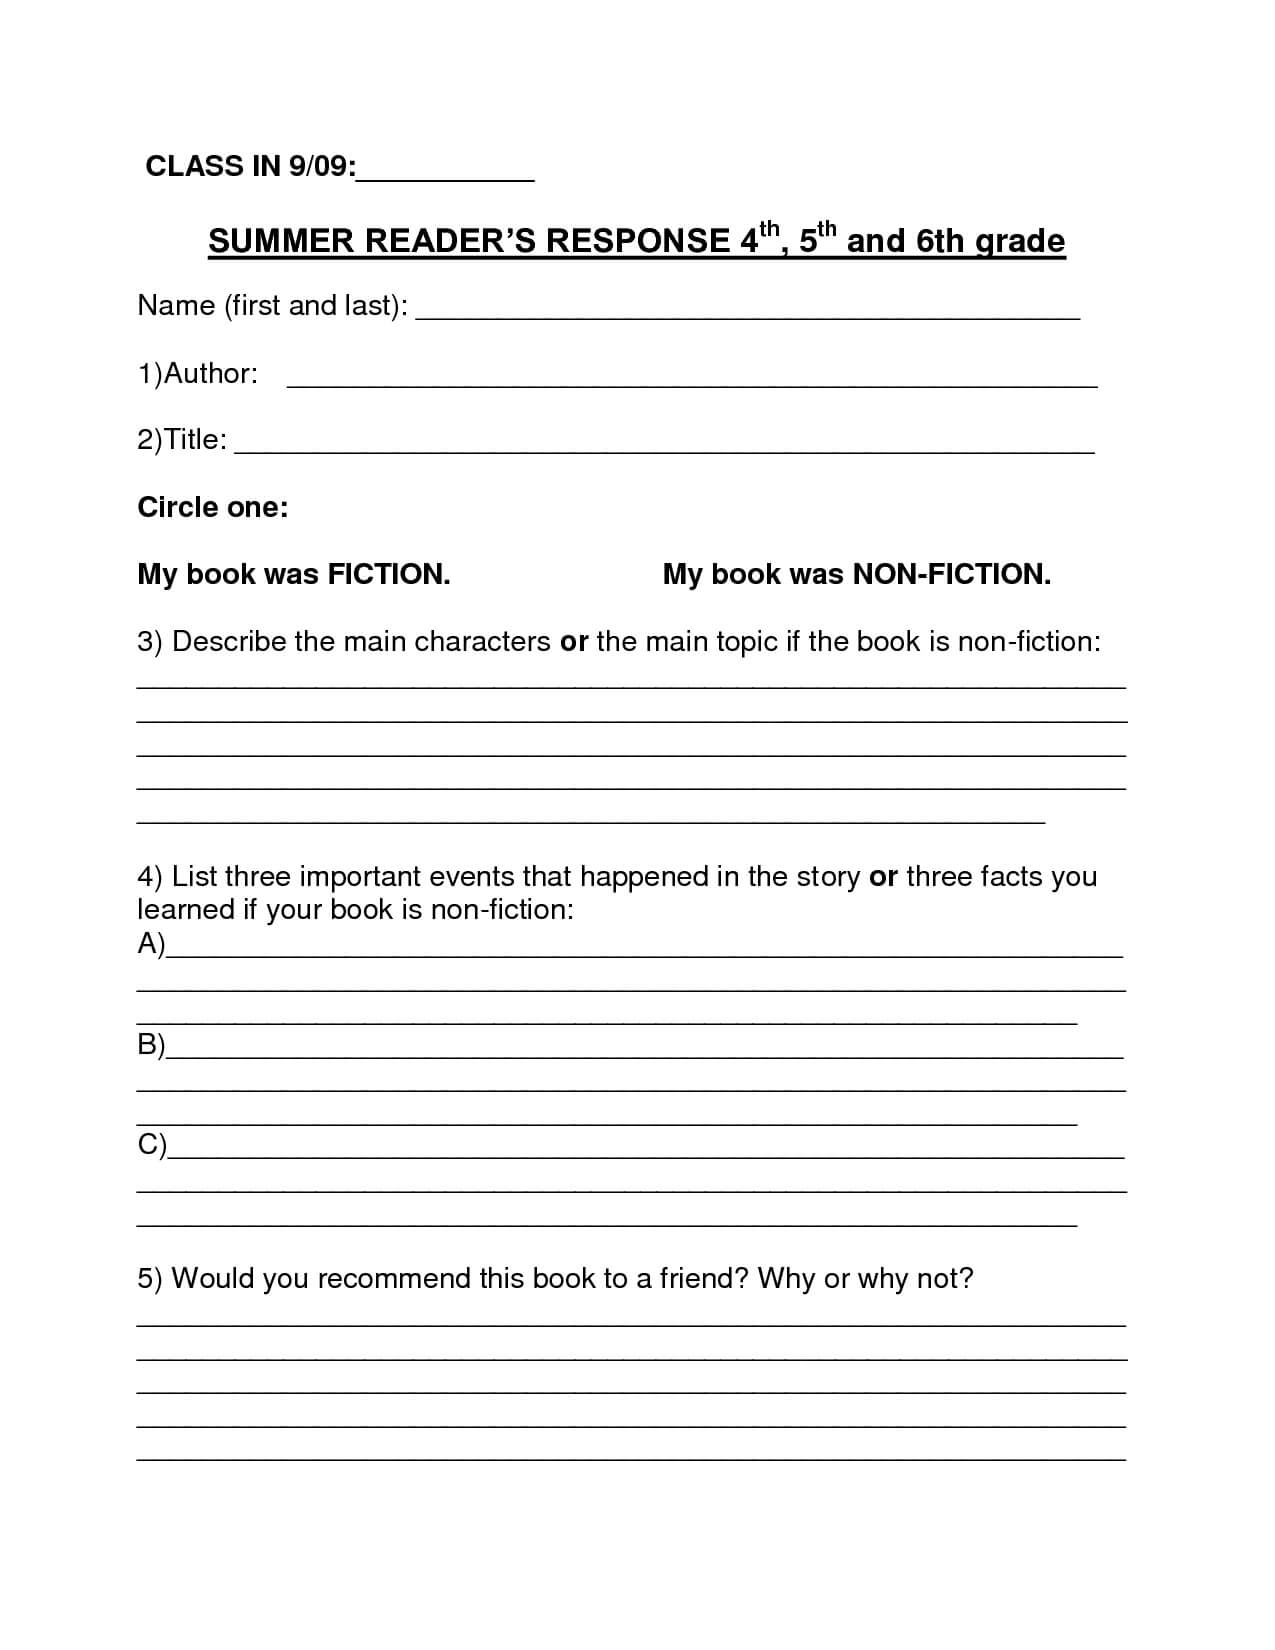 Book Report Template | Summer Book Report 4Th -6Th Grade regarding First Grade Book Report Template